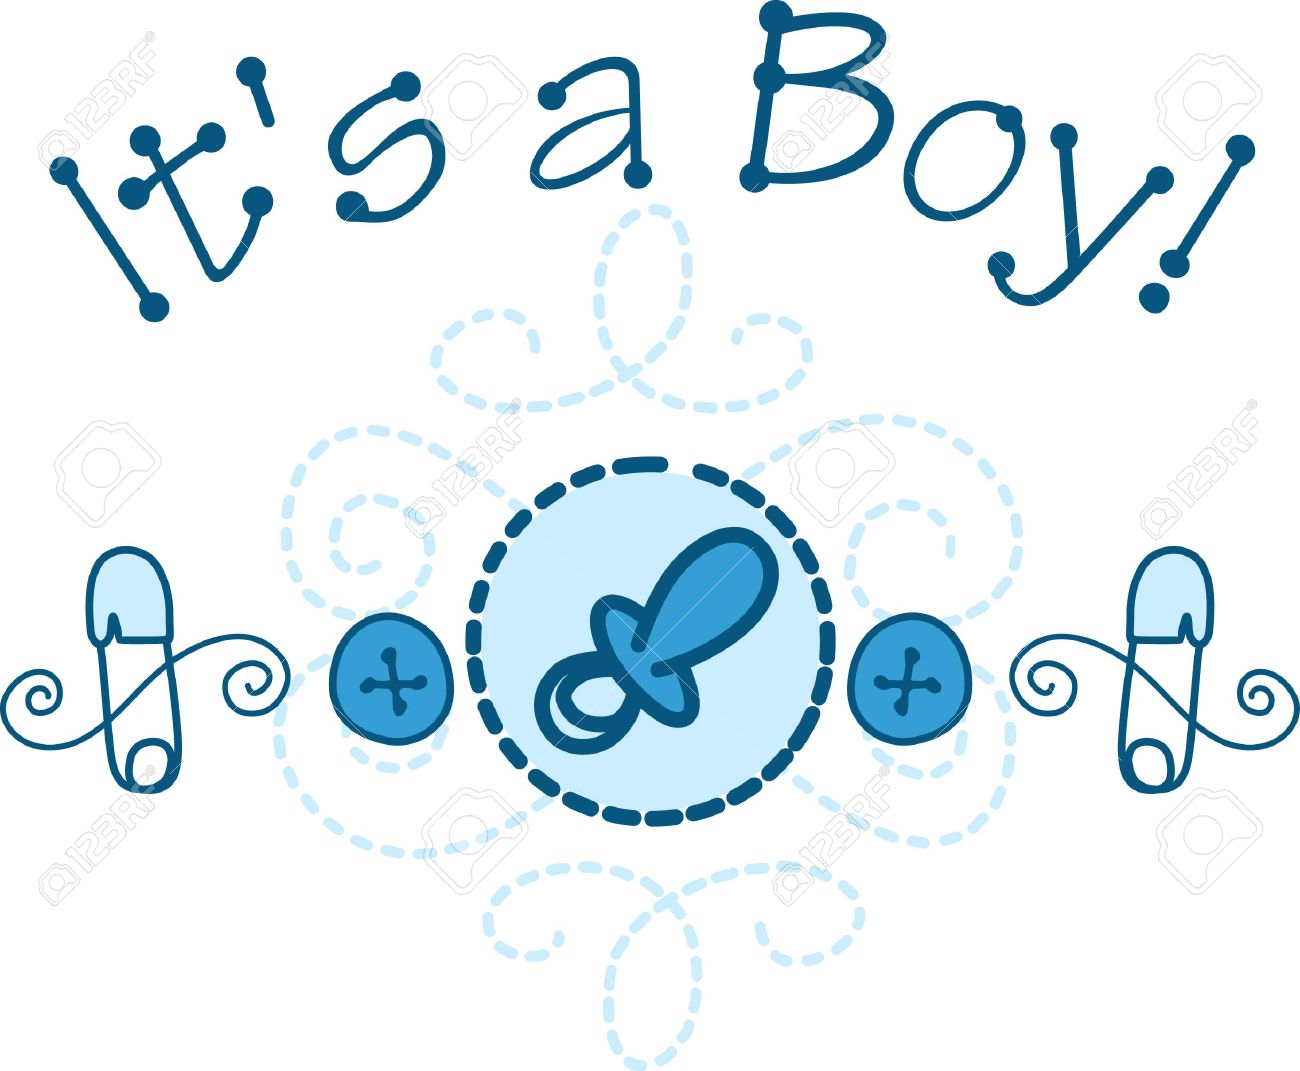 Welcome the new baby boy with this cute design of baby necessities.